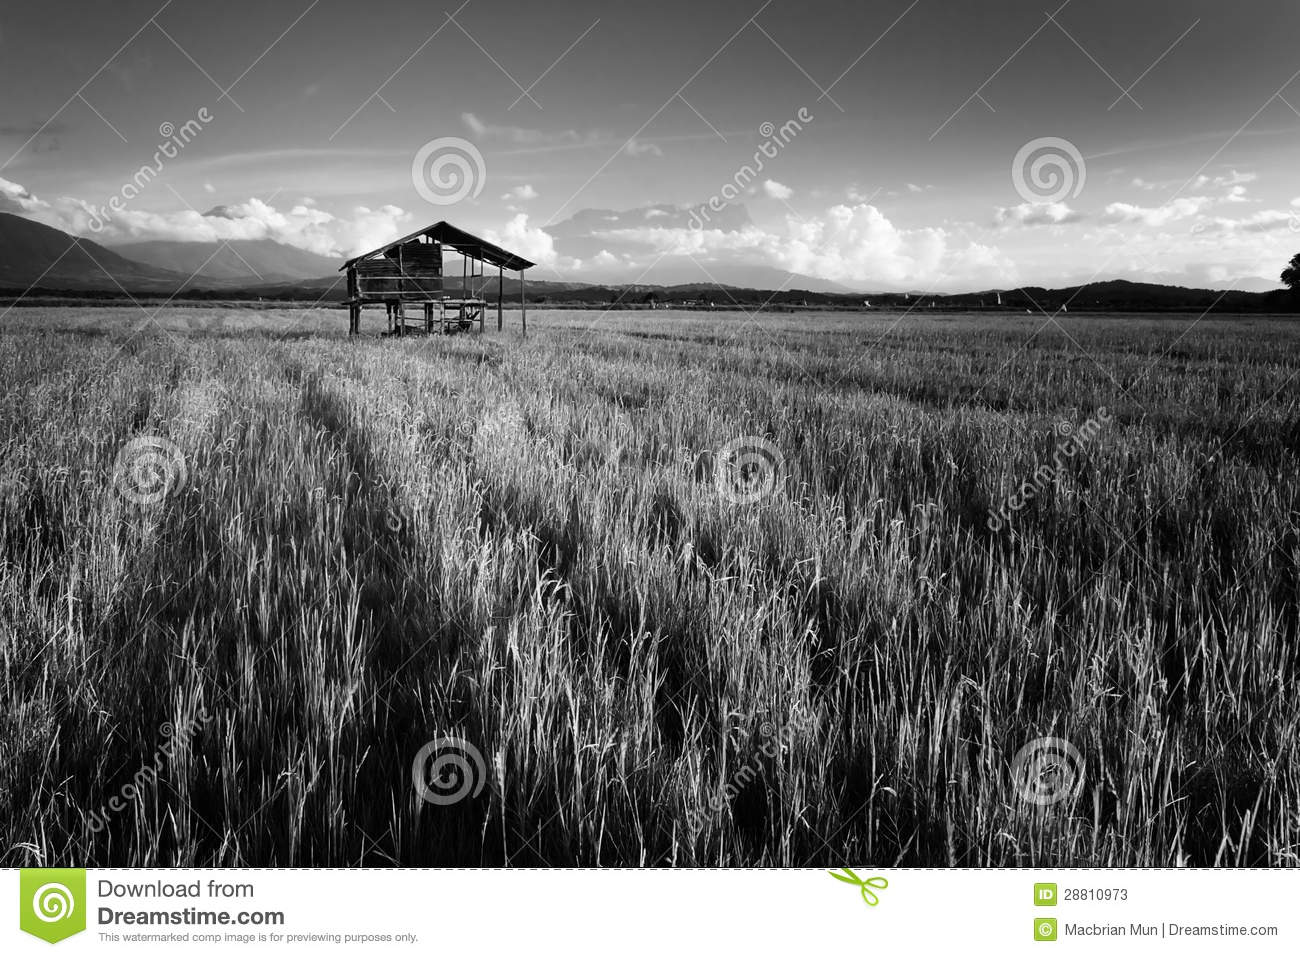 Kota Belud Malaysia  city pictures gallery : Paddy field in black and white at Kota Belud, Sabah, Borneo, Malaysia.